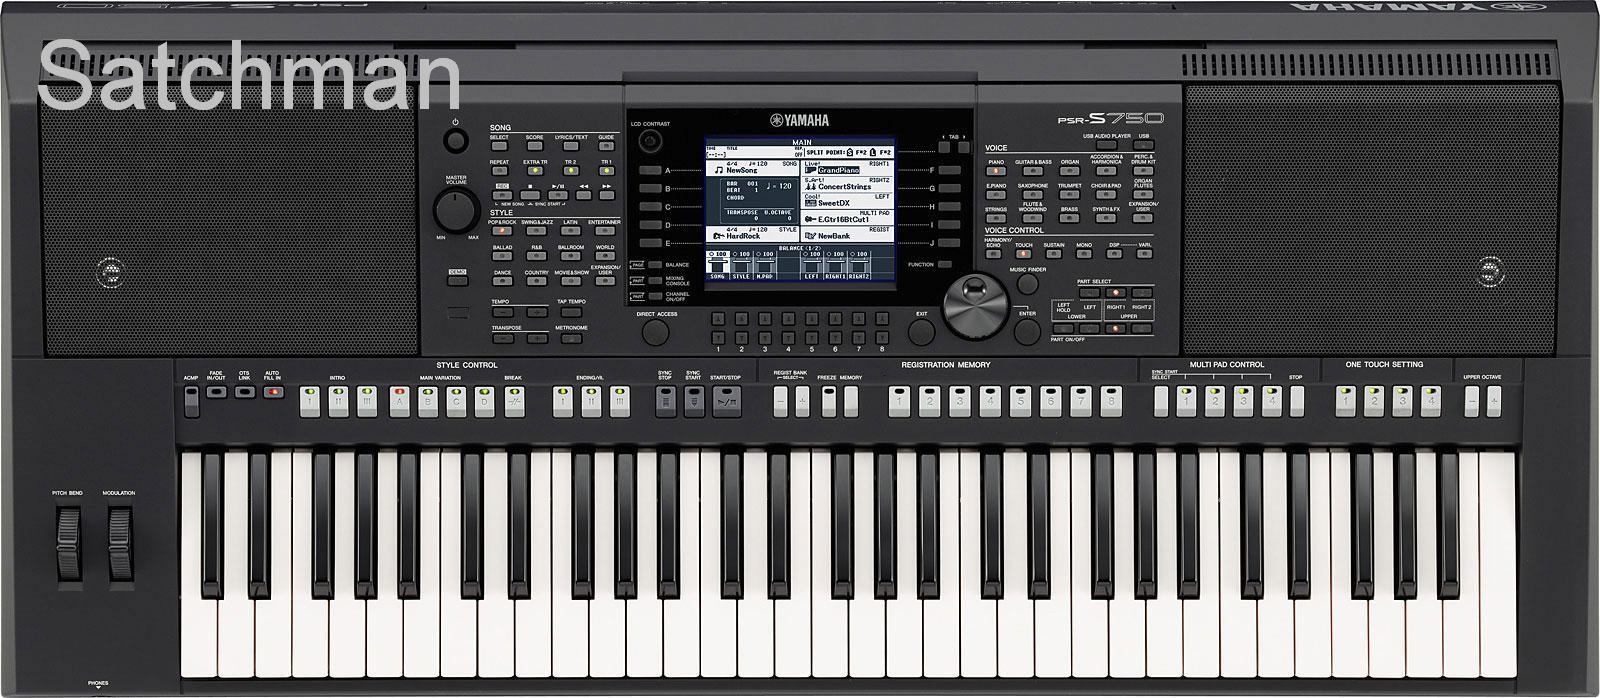 How To Save Song In Yamaha Psr E